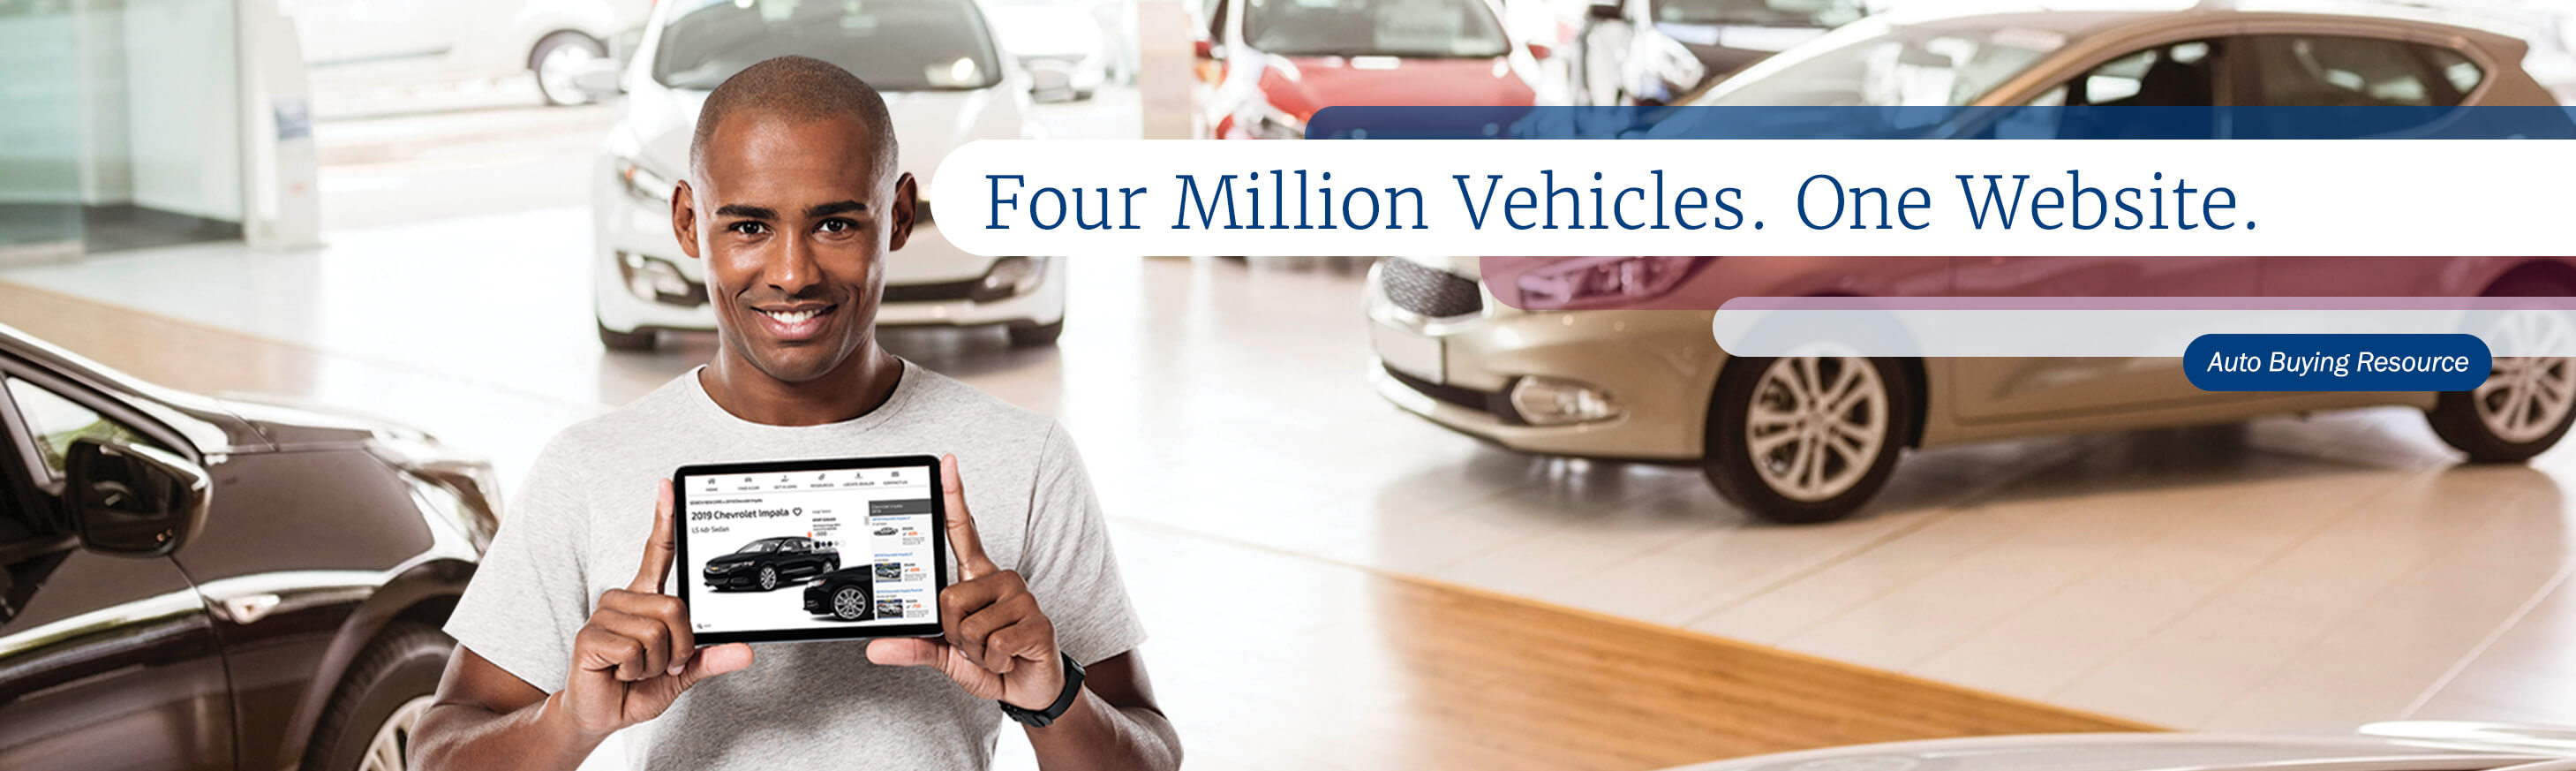 Four Million Vehicles. One Website. WBVFCU Auto Buying Resource